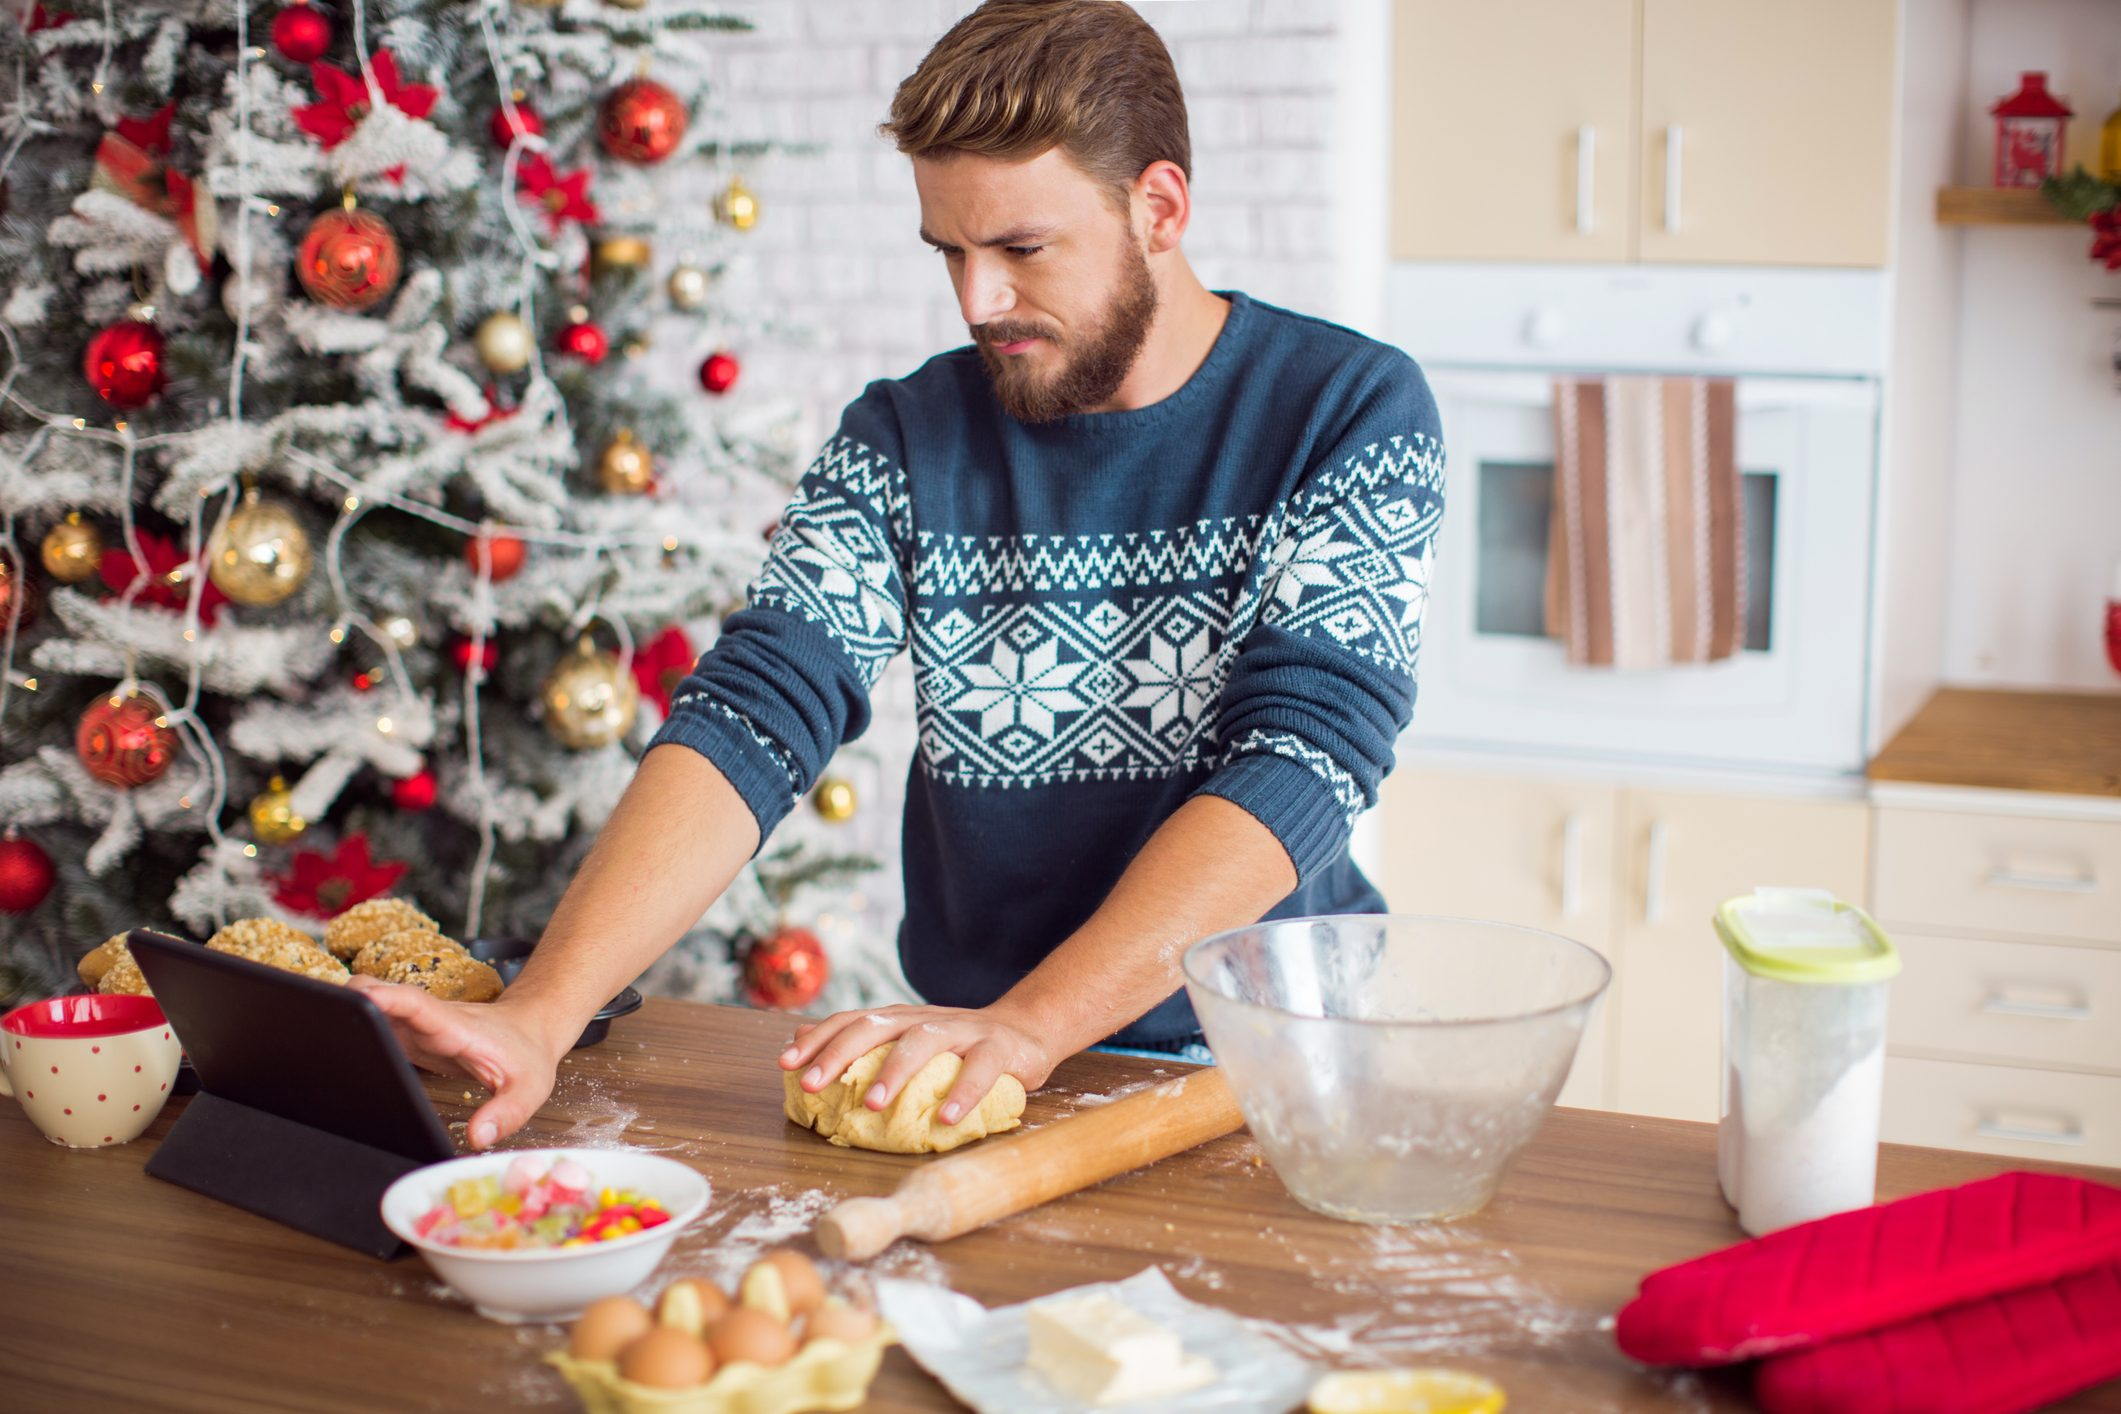 Man baking in kitchen for christmas.